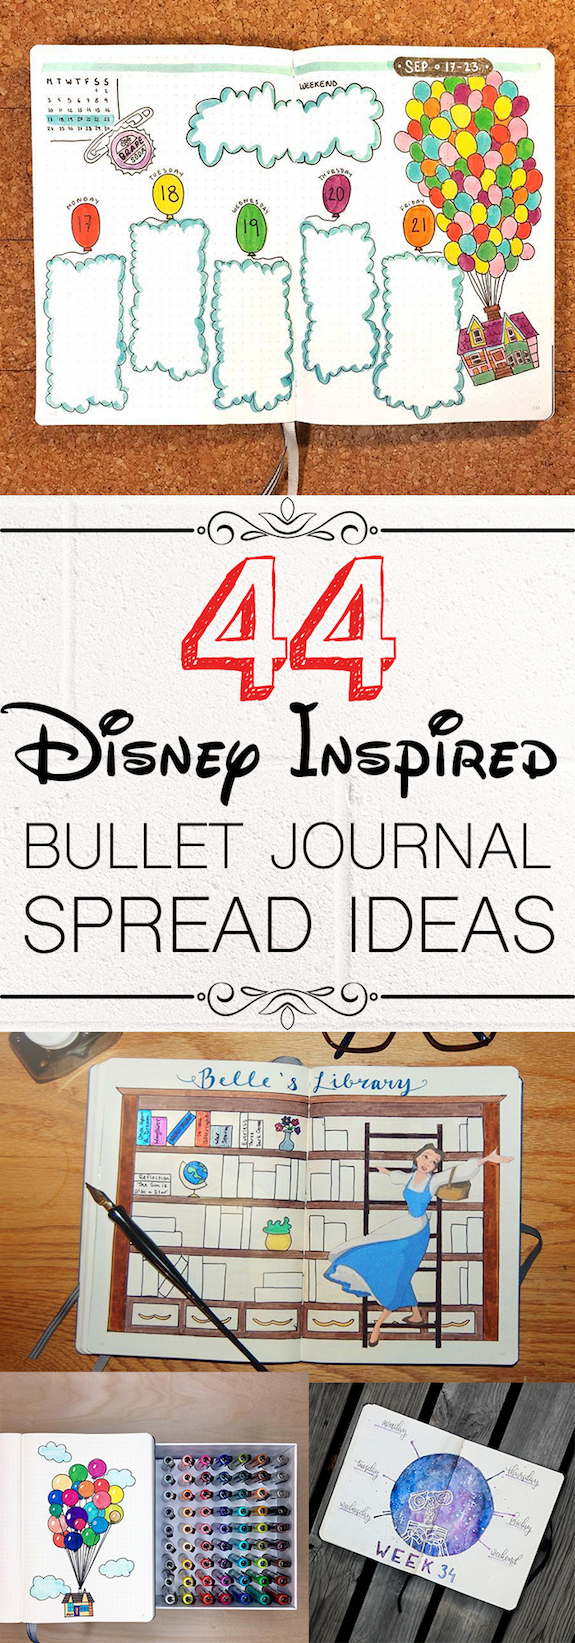 44 Magical Disney Inspired Bullet Journal Ideas Your Inner Child Will Swoon Over is part of Organization Printables Bullet Journal - Add a little sparkle of magic to your bullet journal with these 44 beautiful Disney Inspired Bullet Journal Layouts